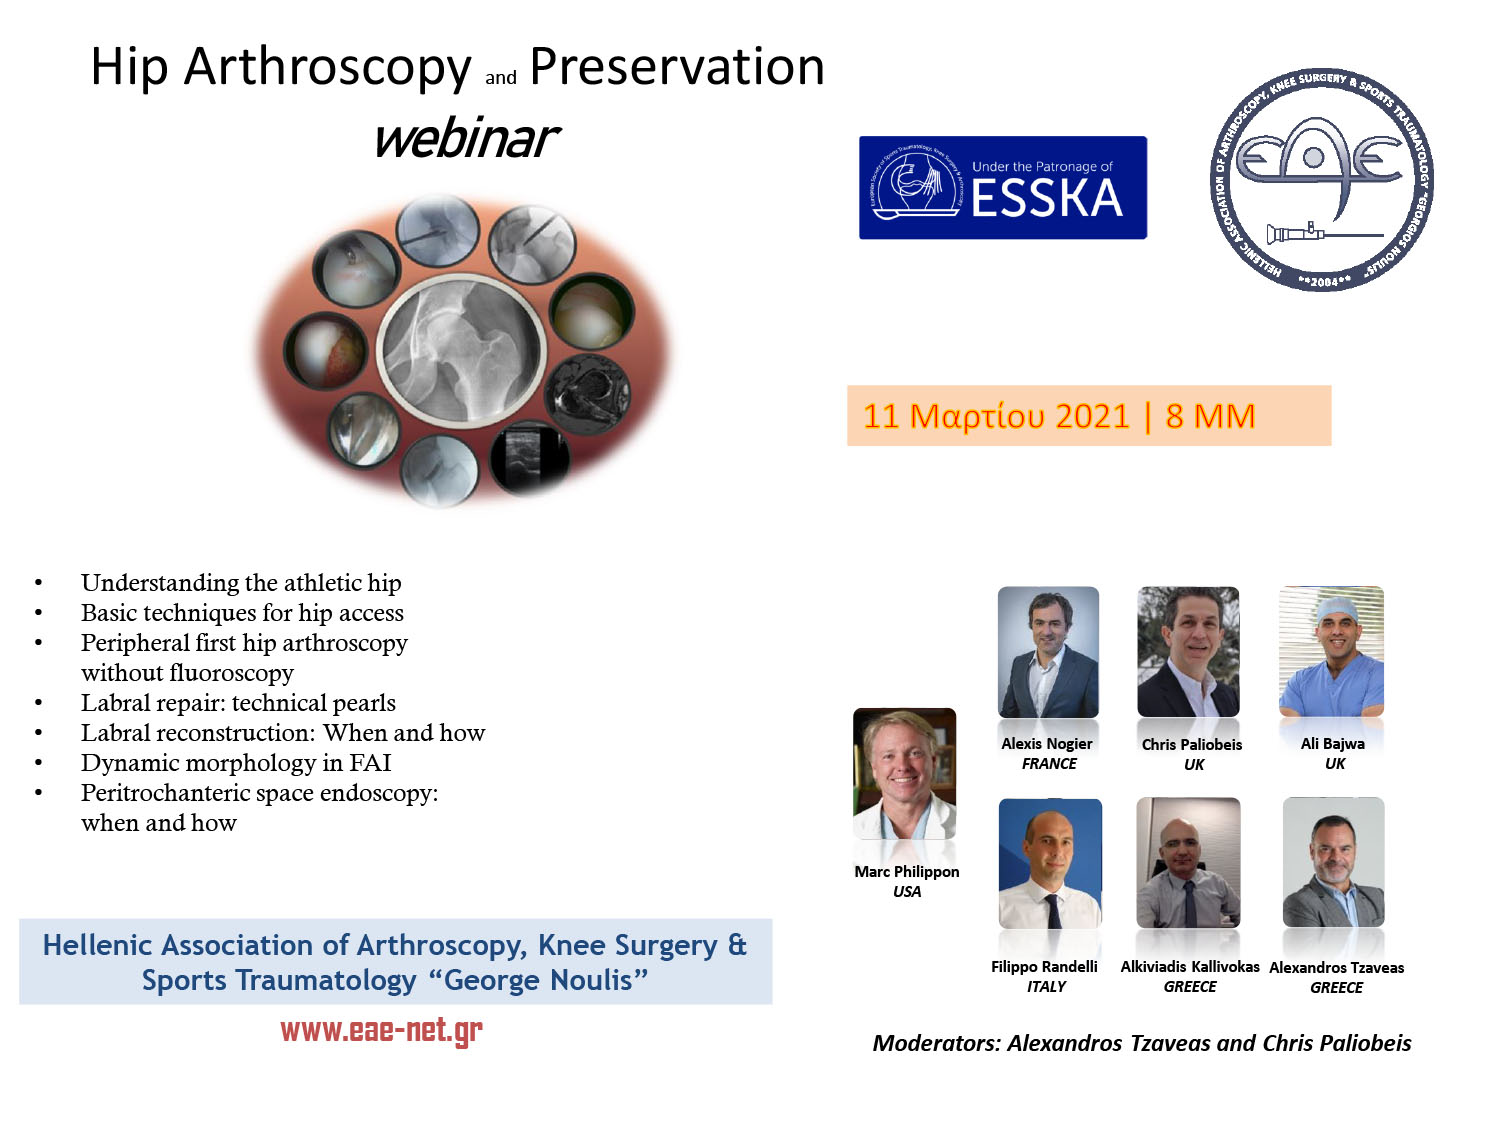 Hip Arthroscopy and Preservation